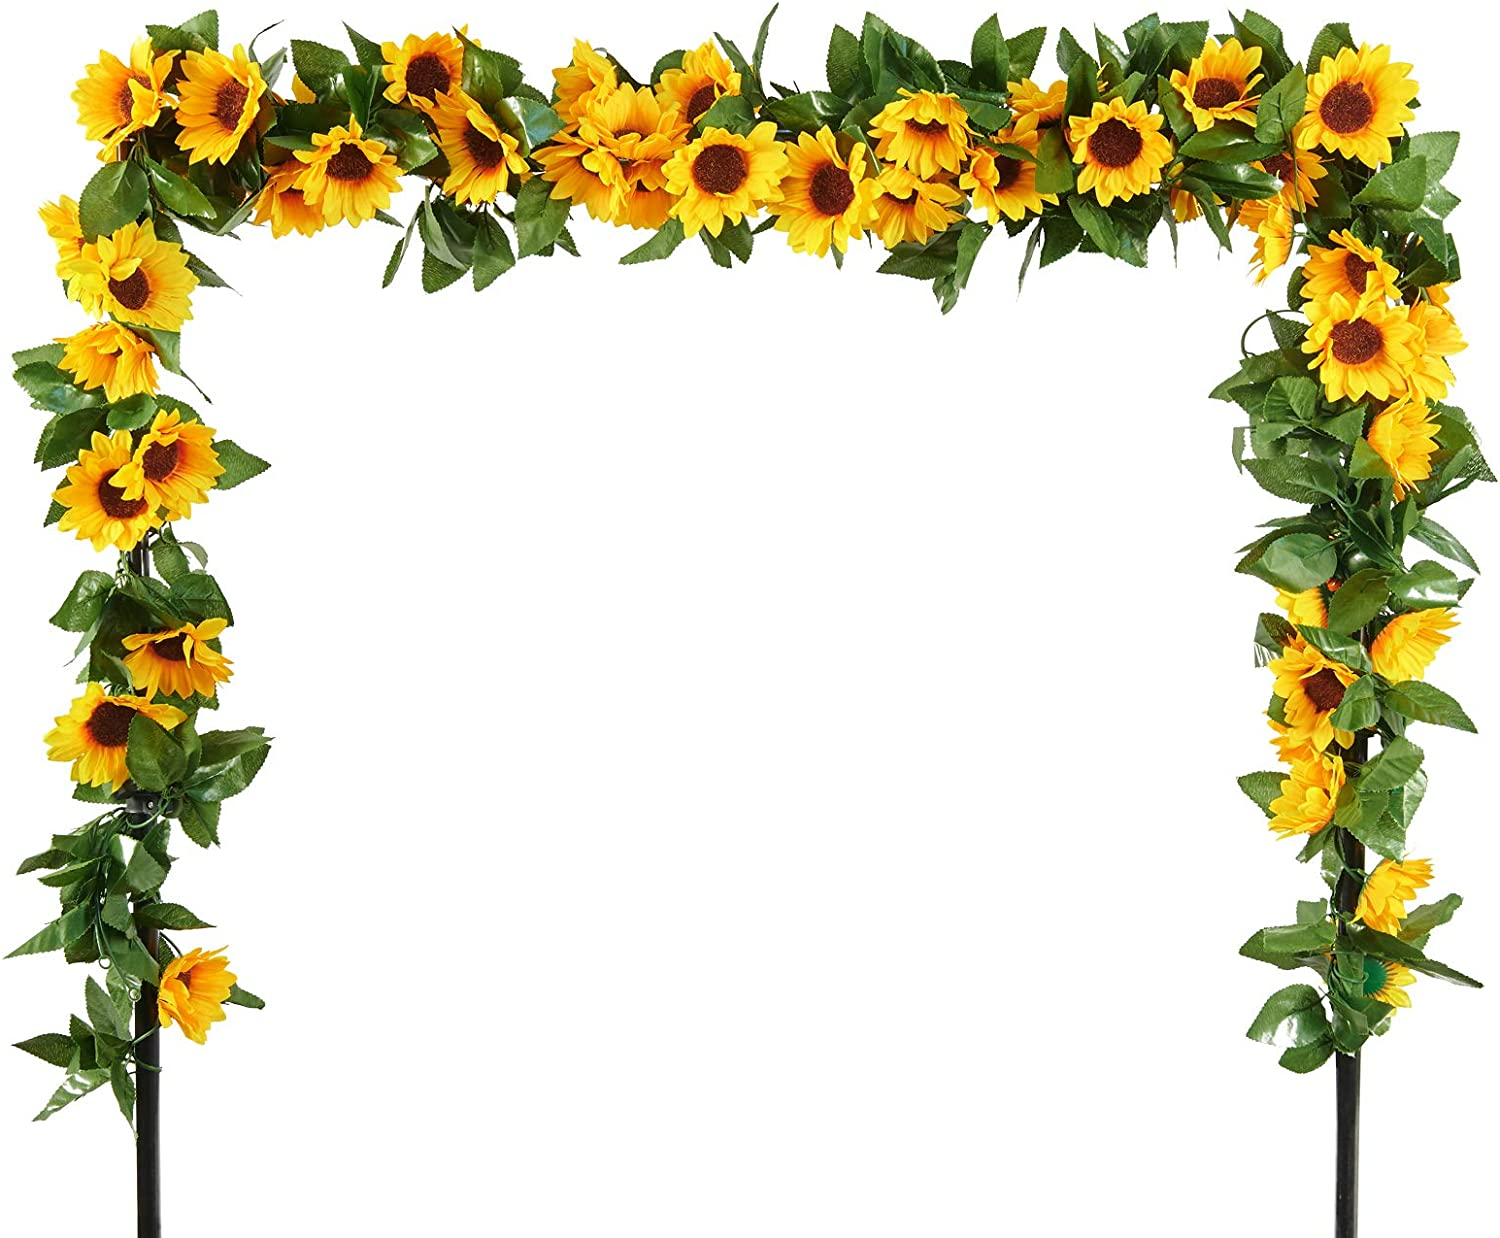 FSALS 6 Pack Sunflower Artificial Garland, 7.2FT Silk Sunflower Vine Yellow Artificial Flowers with Green Leaves for Wedding Table Garden Home Outdoor Decor